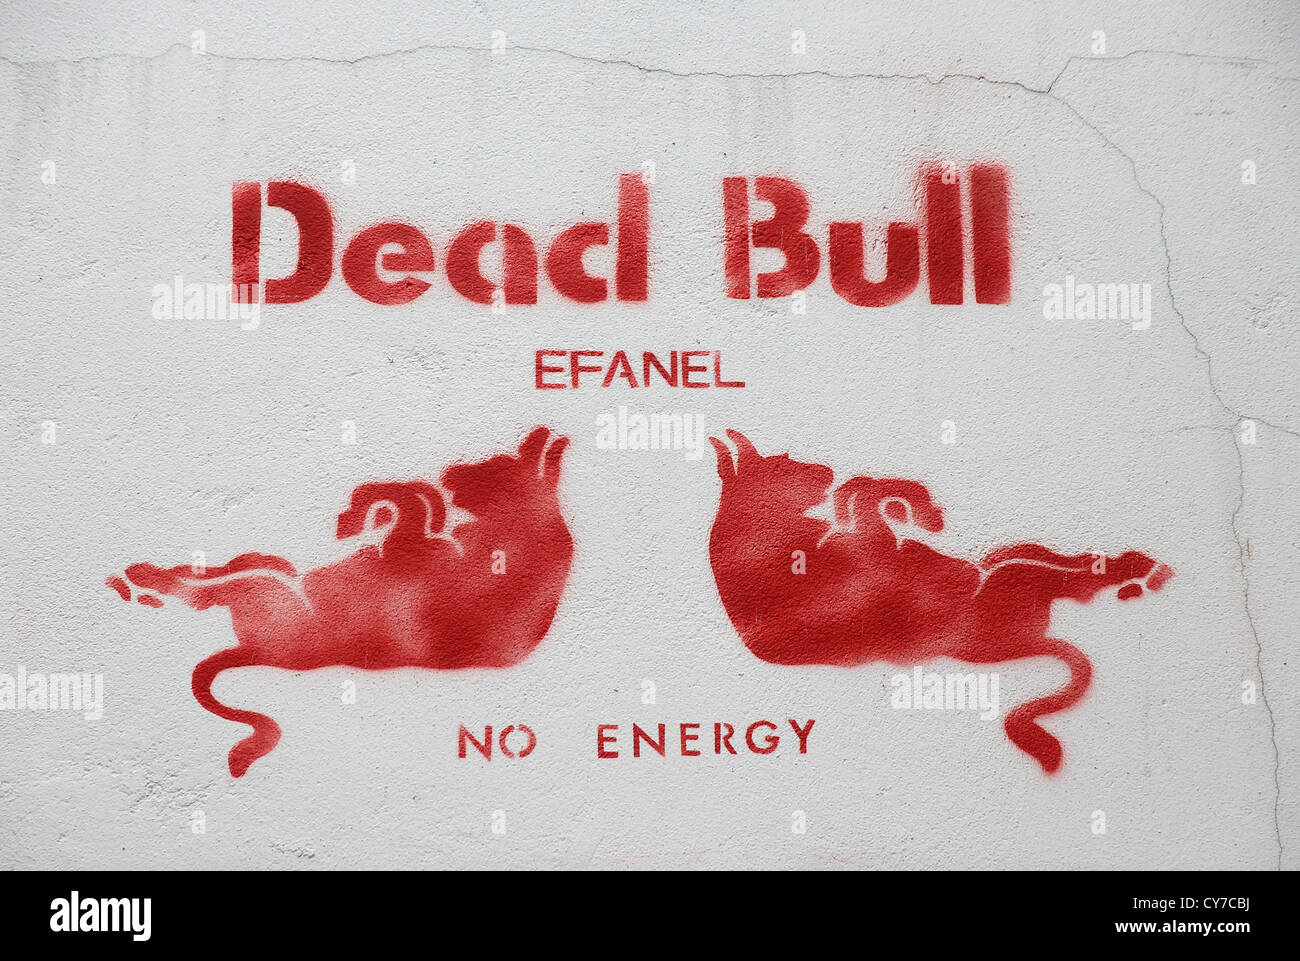 red bull icon logo stock photos red bull icon logo stock images